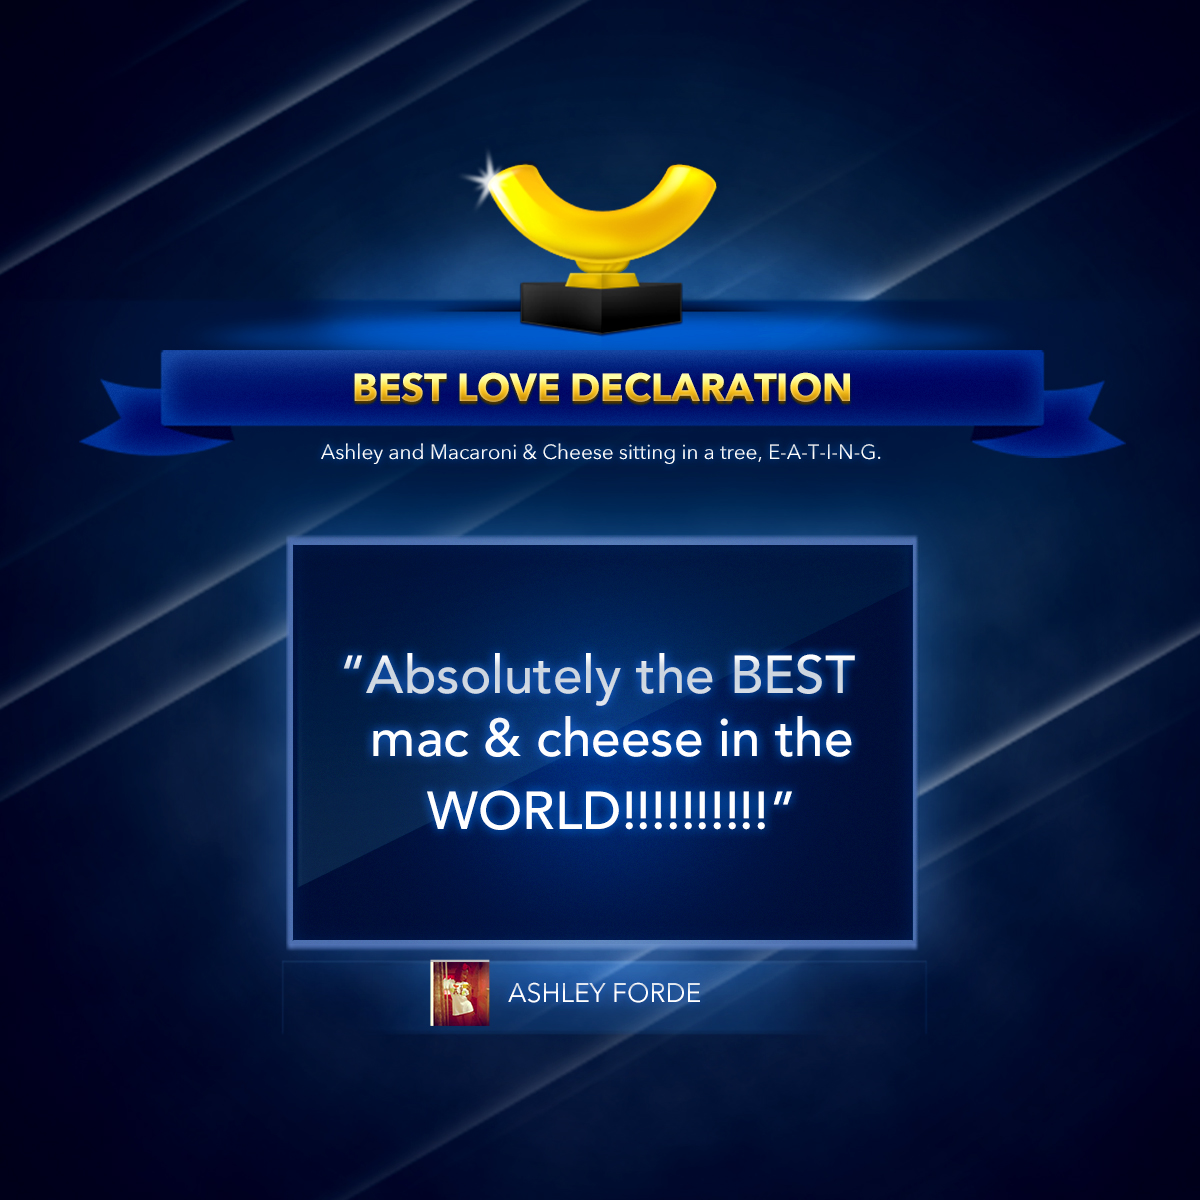 Best Love Declaration.jpg